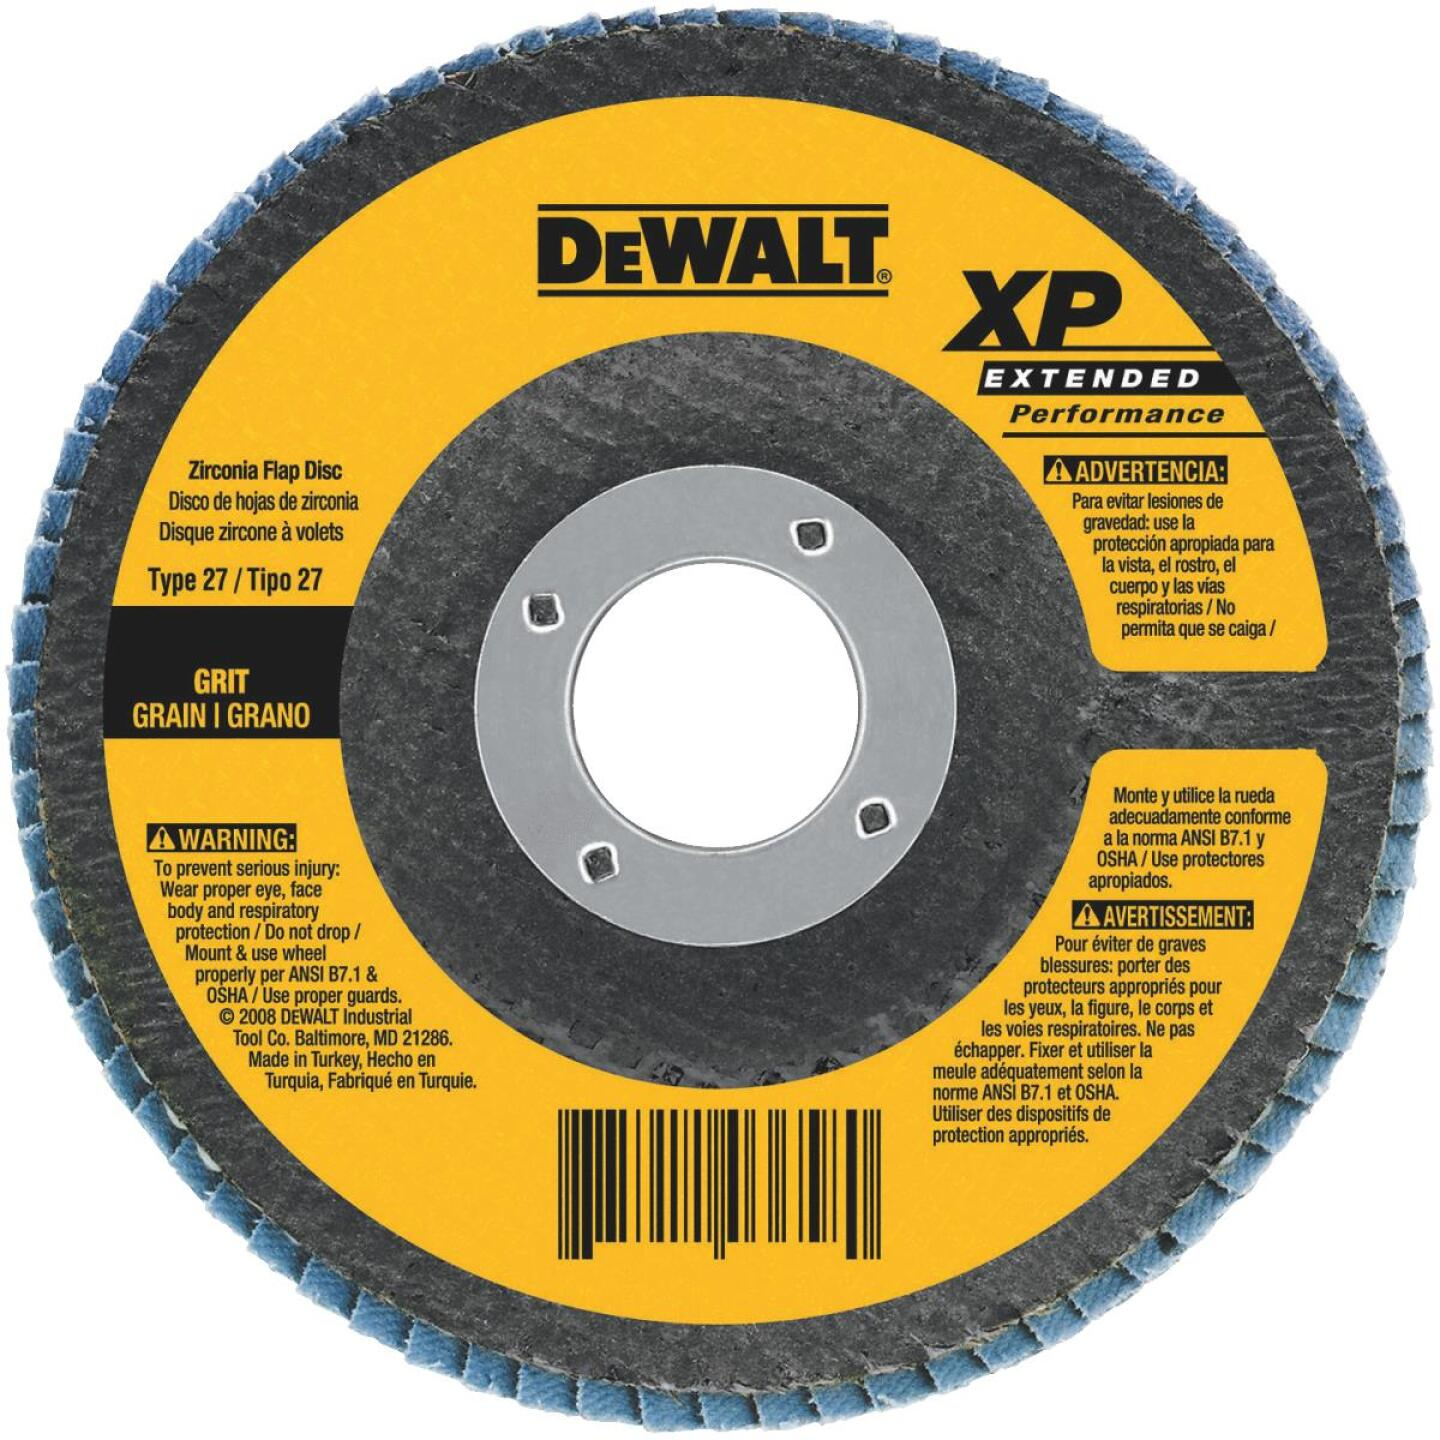 DeWalt 4-1/2 In. 36-Grit Type 29 High Performance Angle Grinder Flap Disc Image 1